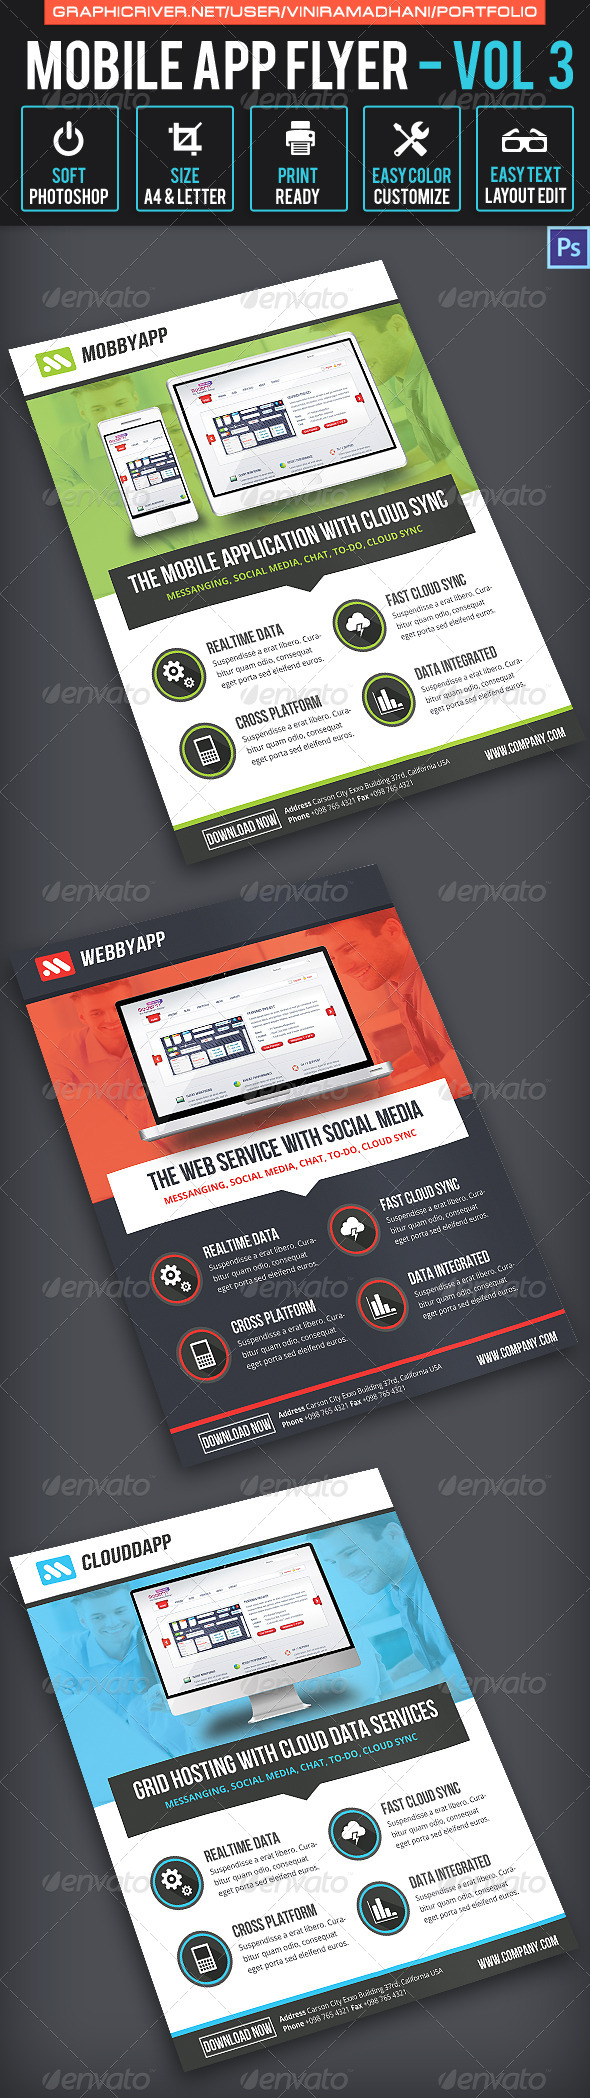 GraphicRiver Mobile App Flyer Volume 3 6548055